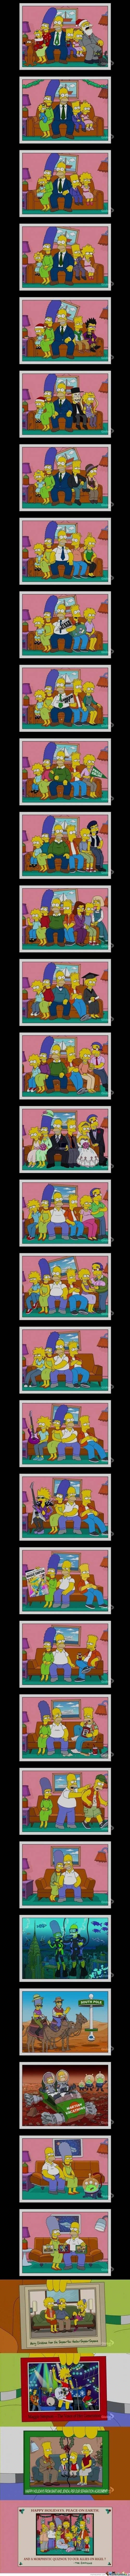 Simpsons Through Time